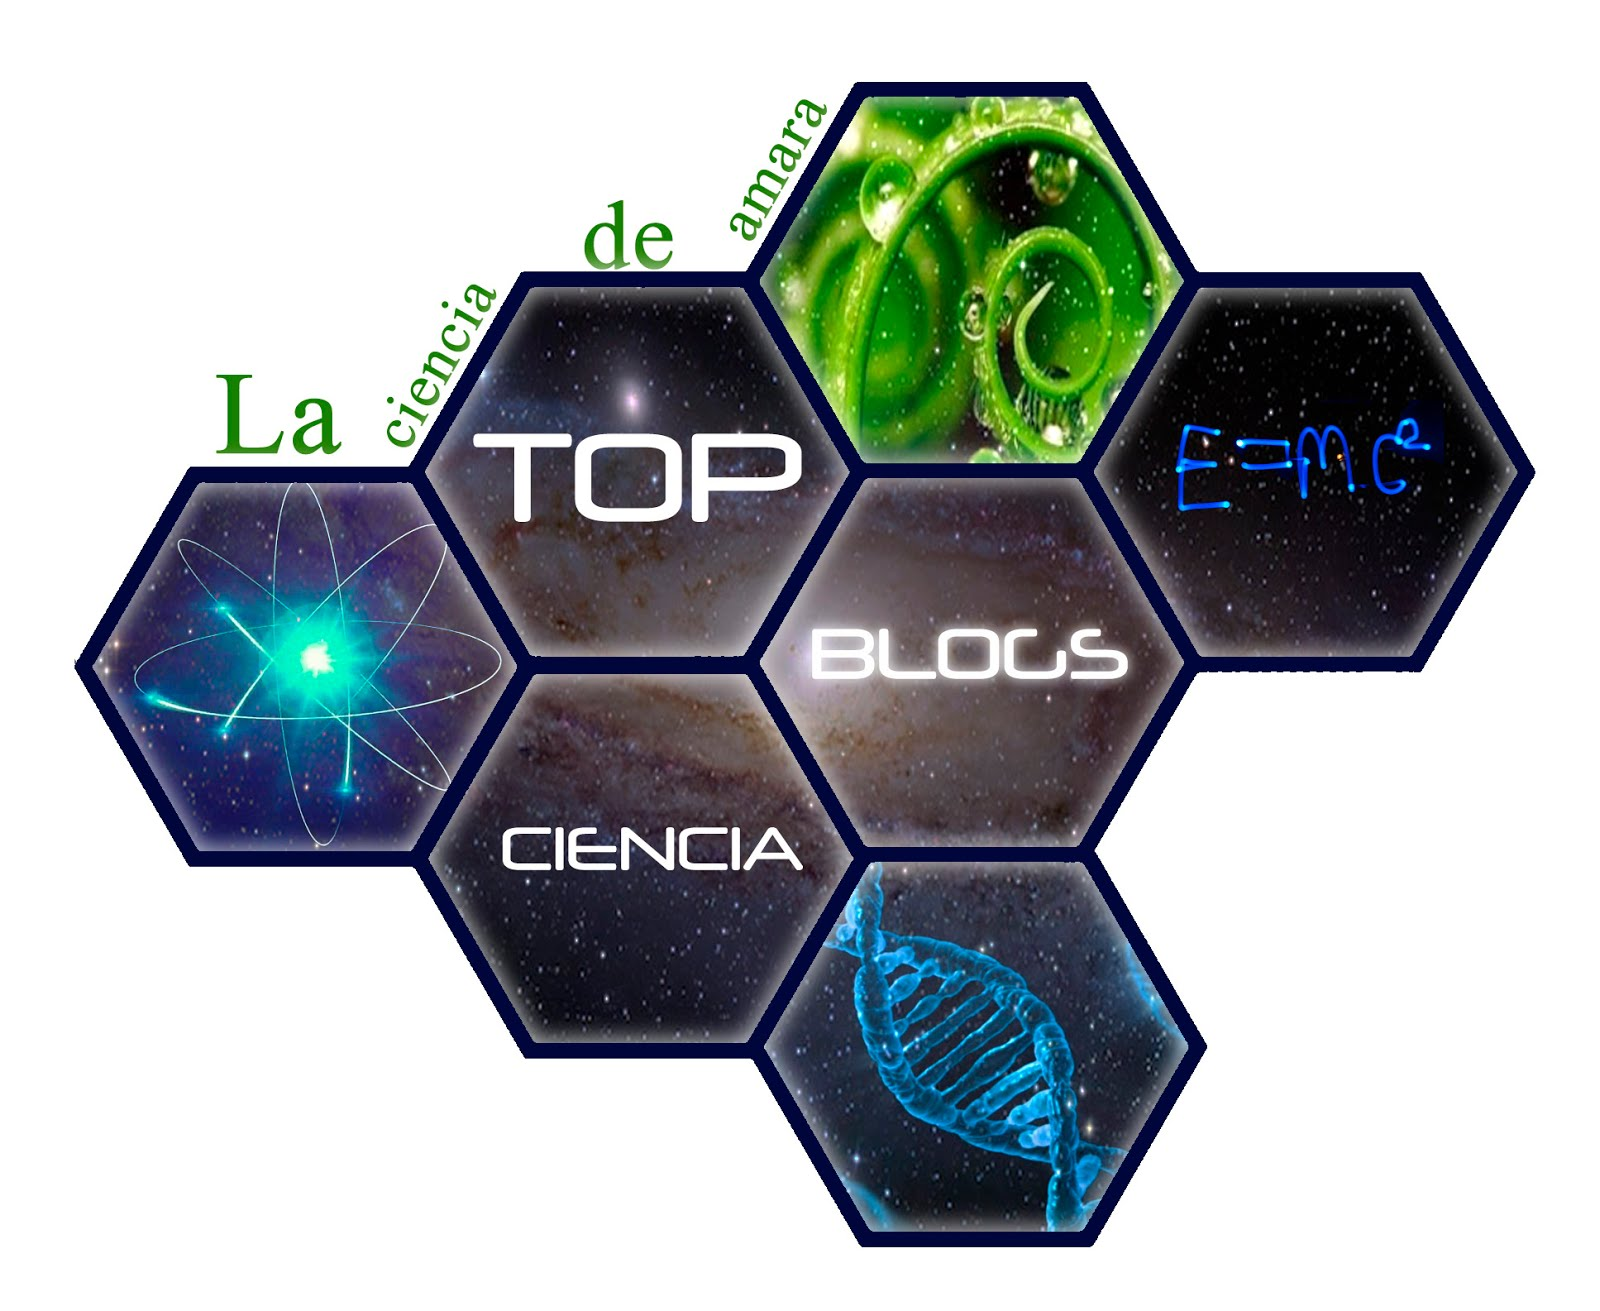 Top Blogs de Ciencia